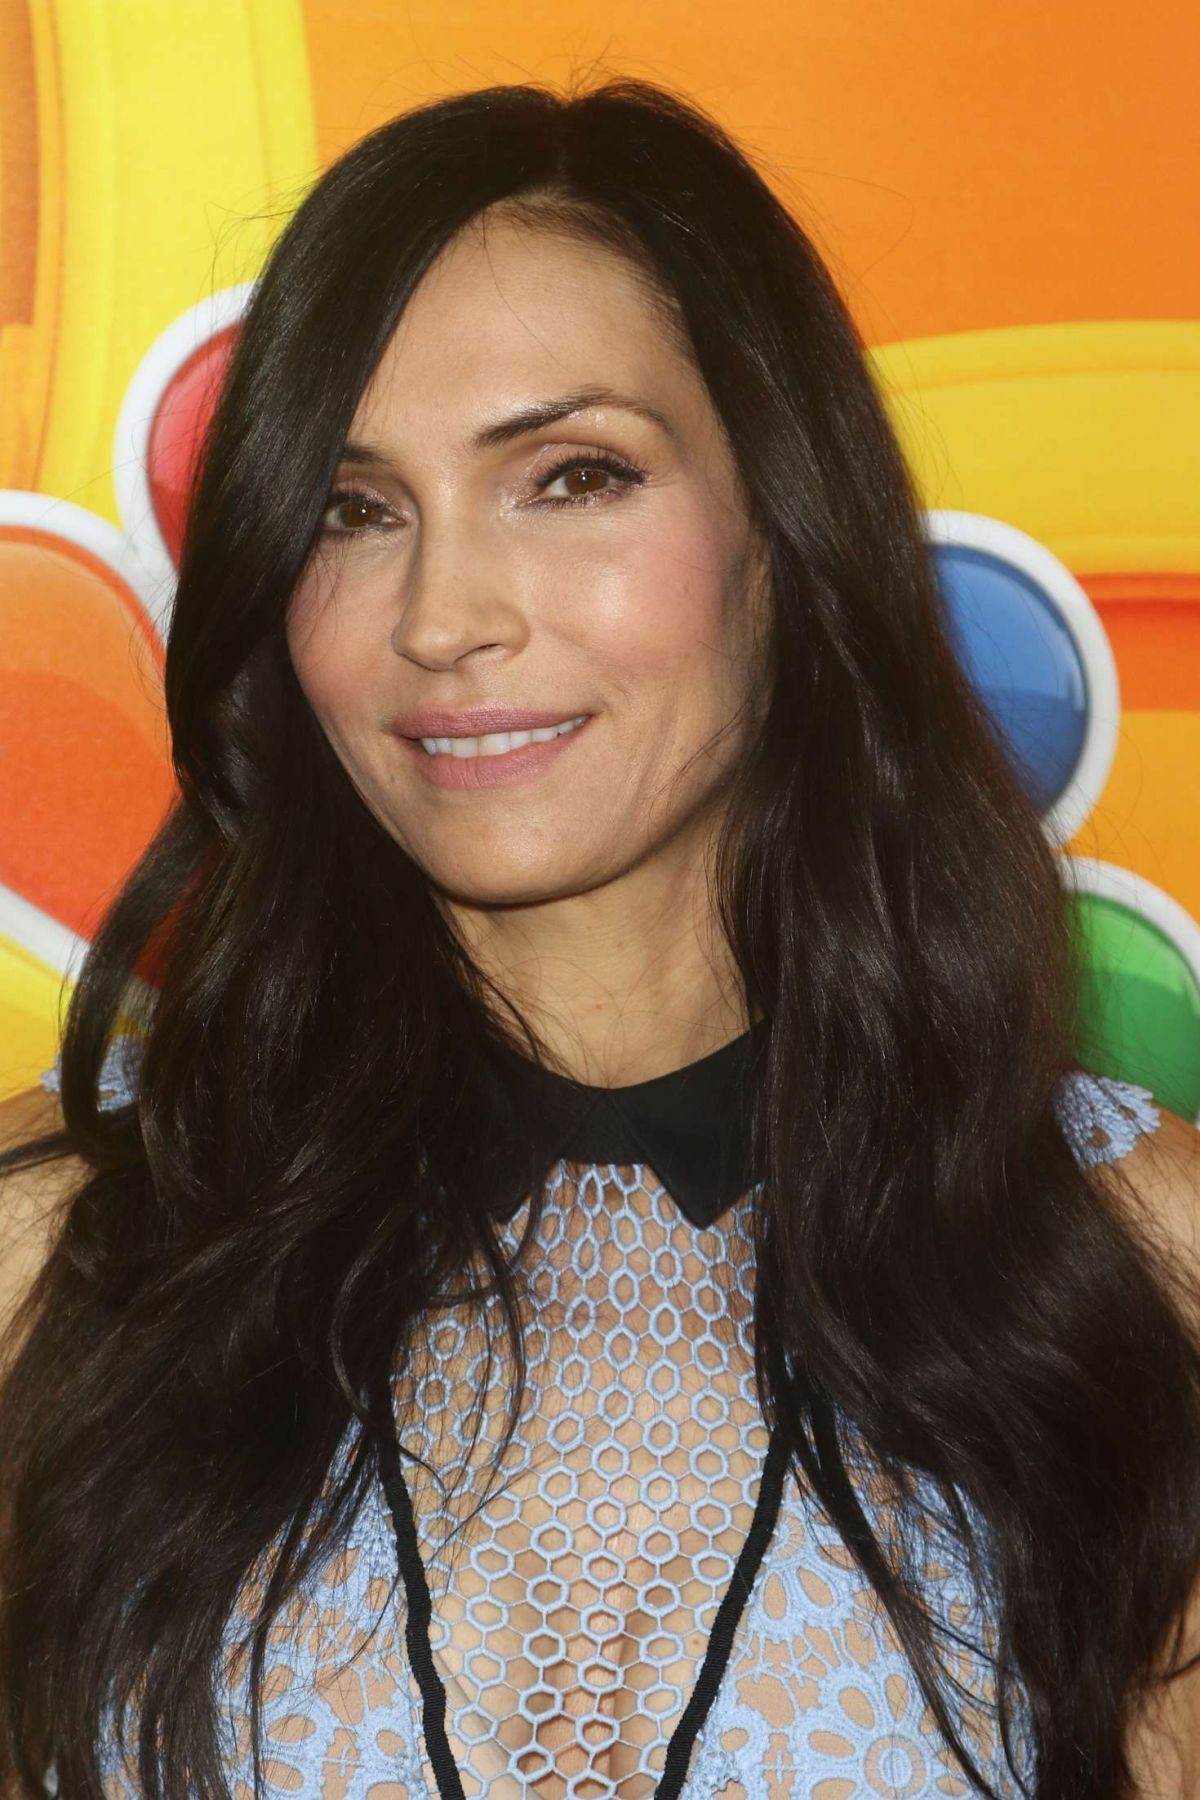 Famke Janssen nude (58 photos), young Sideboobs, Snapchat, lingerie 2015